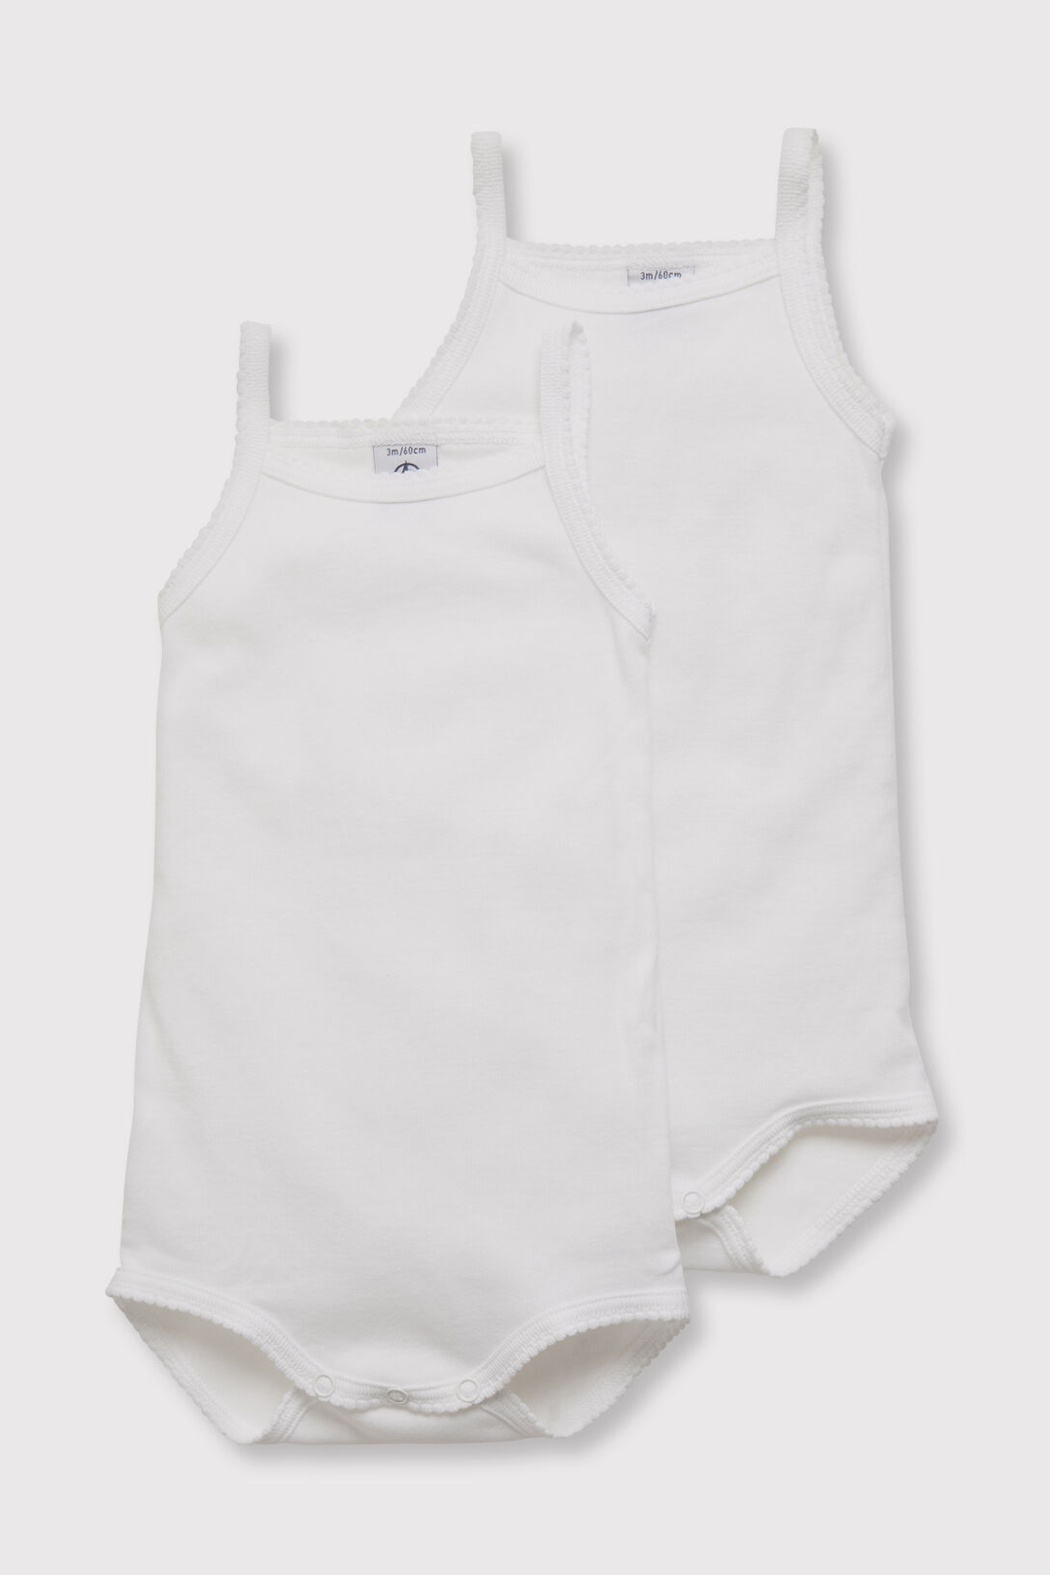 Petit Bateau Baby Girl Bodysuit With Shoulder Pads (Pack Of 2) - Main Image